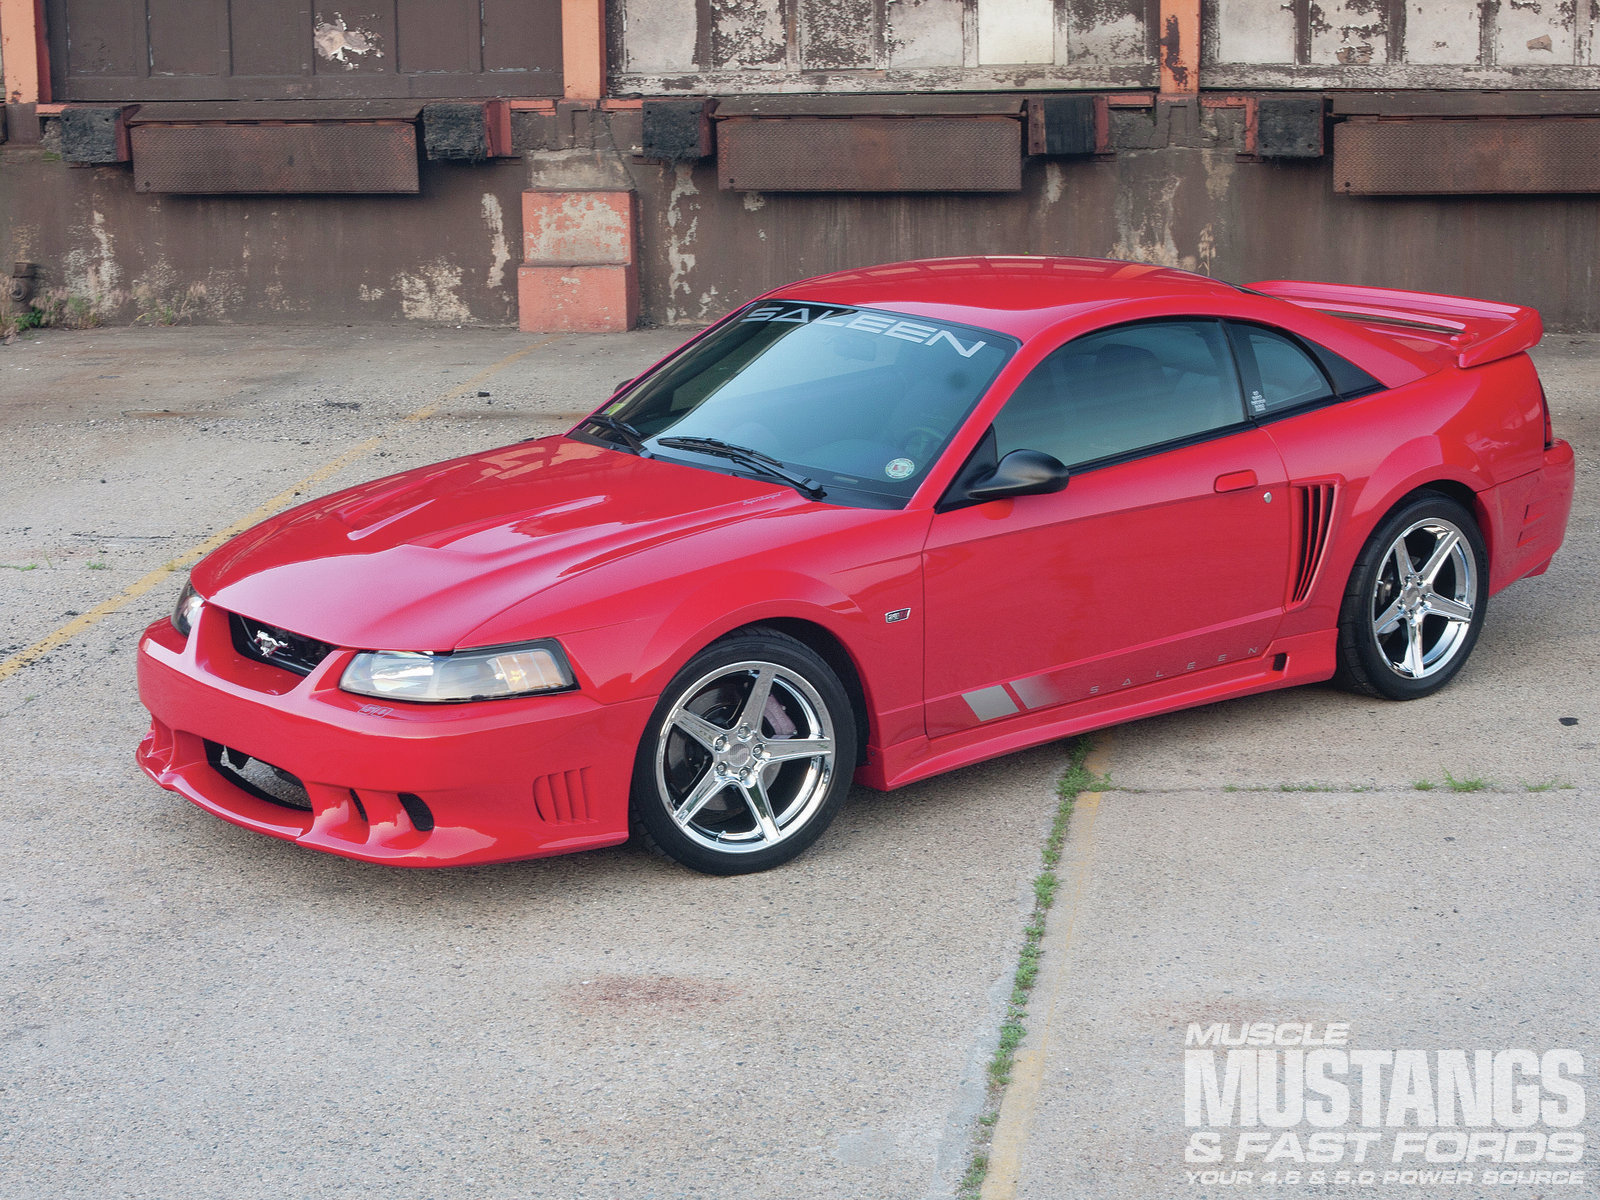 Cl Mustang >> 3DTuning of Mustang Saleen S281 Coupe 2000 3DTuning.com - unique on-line car configurator for ...